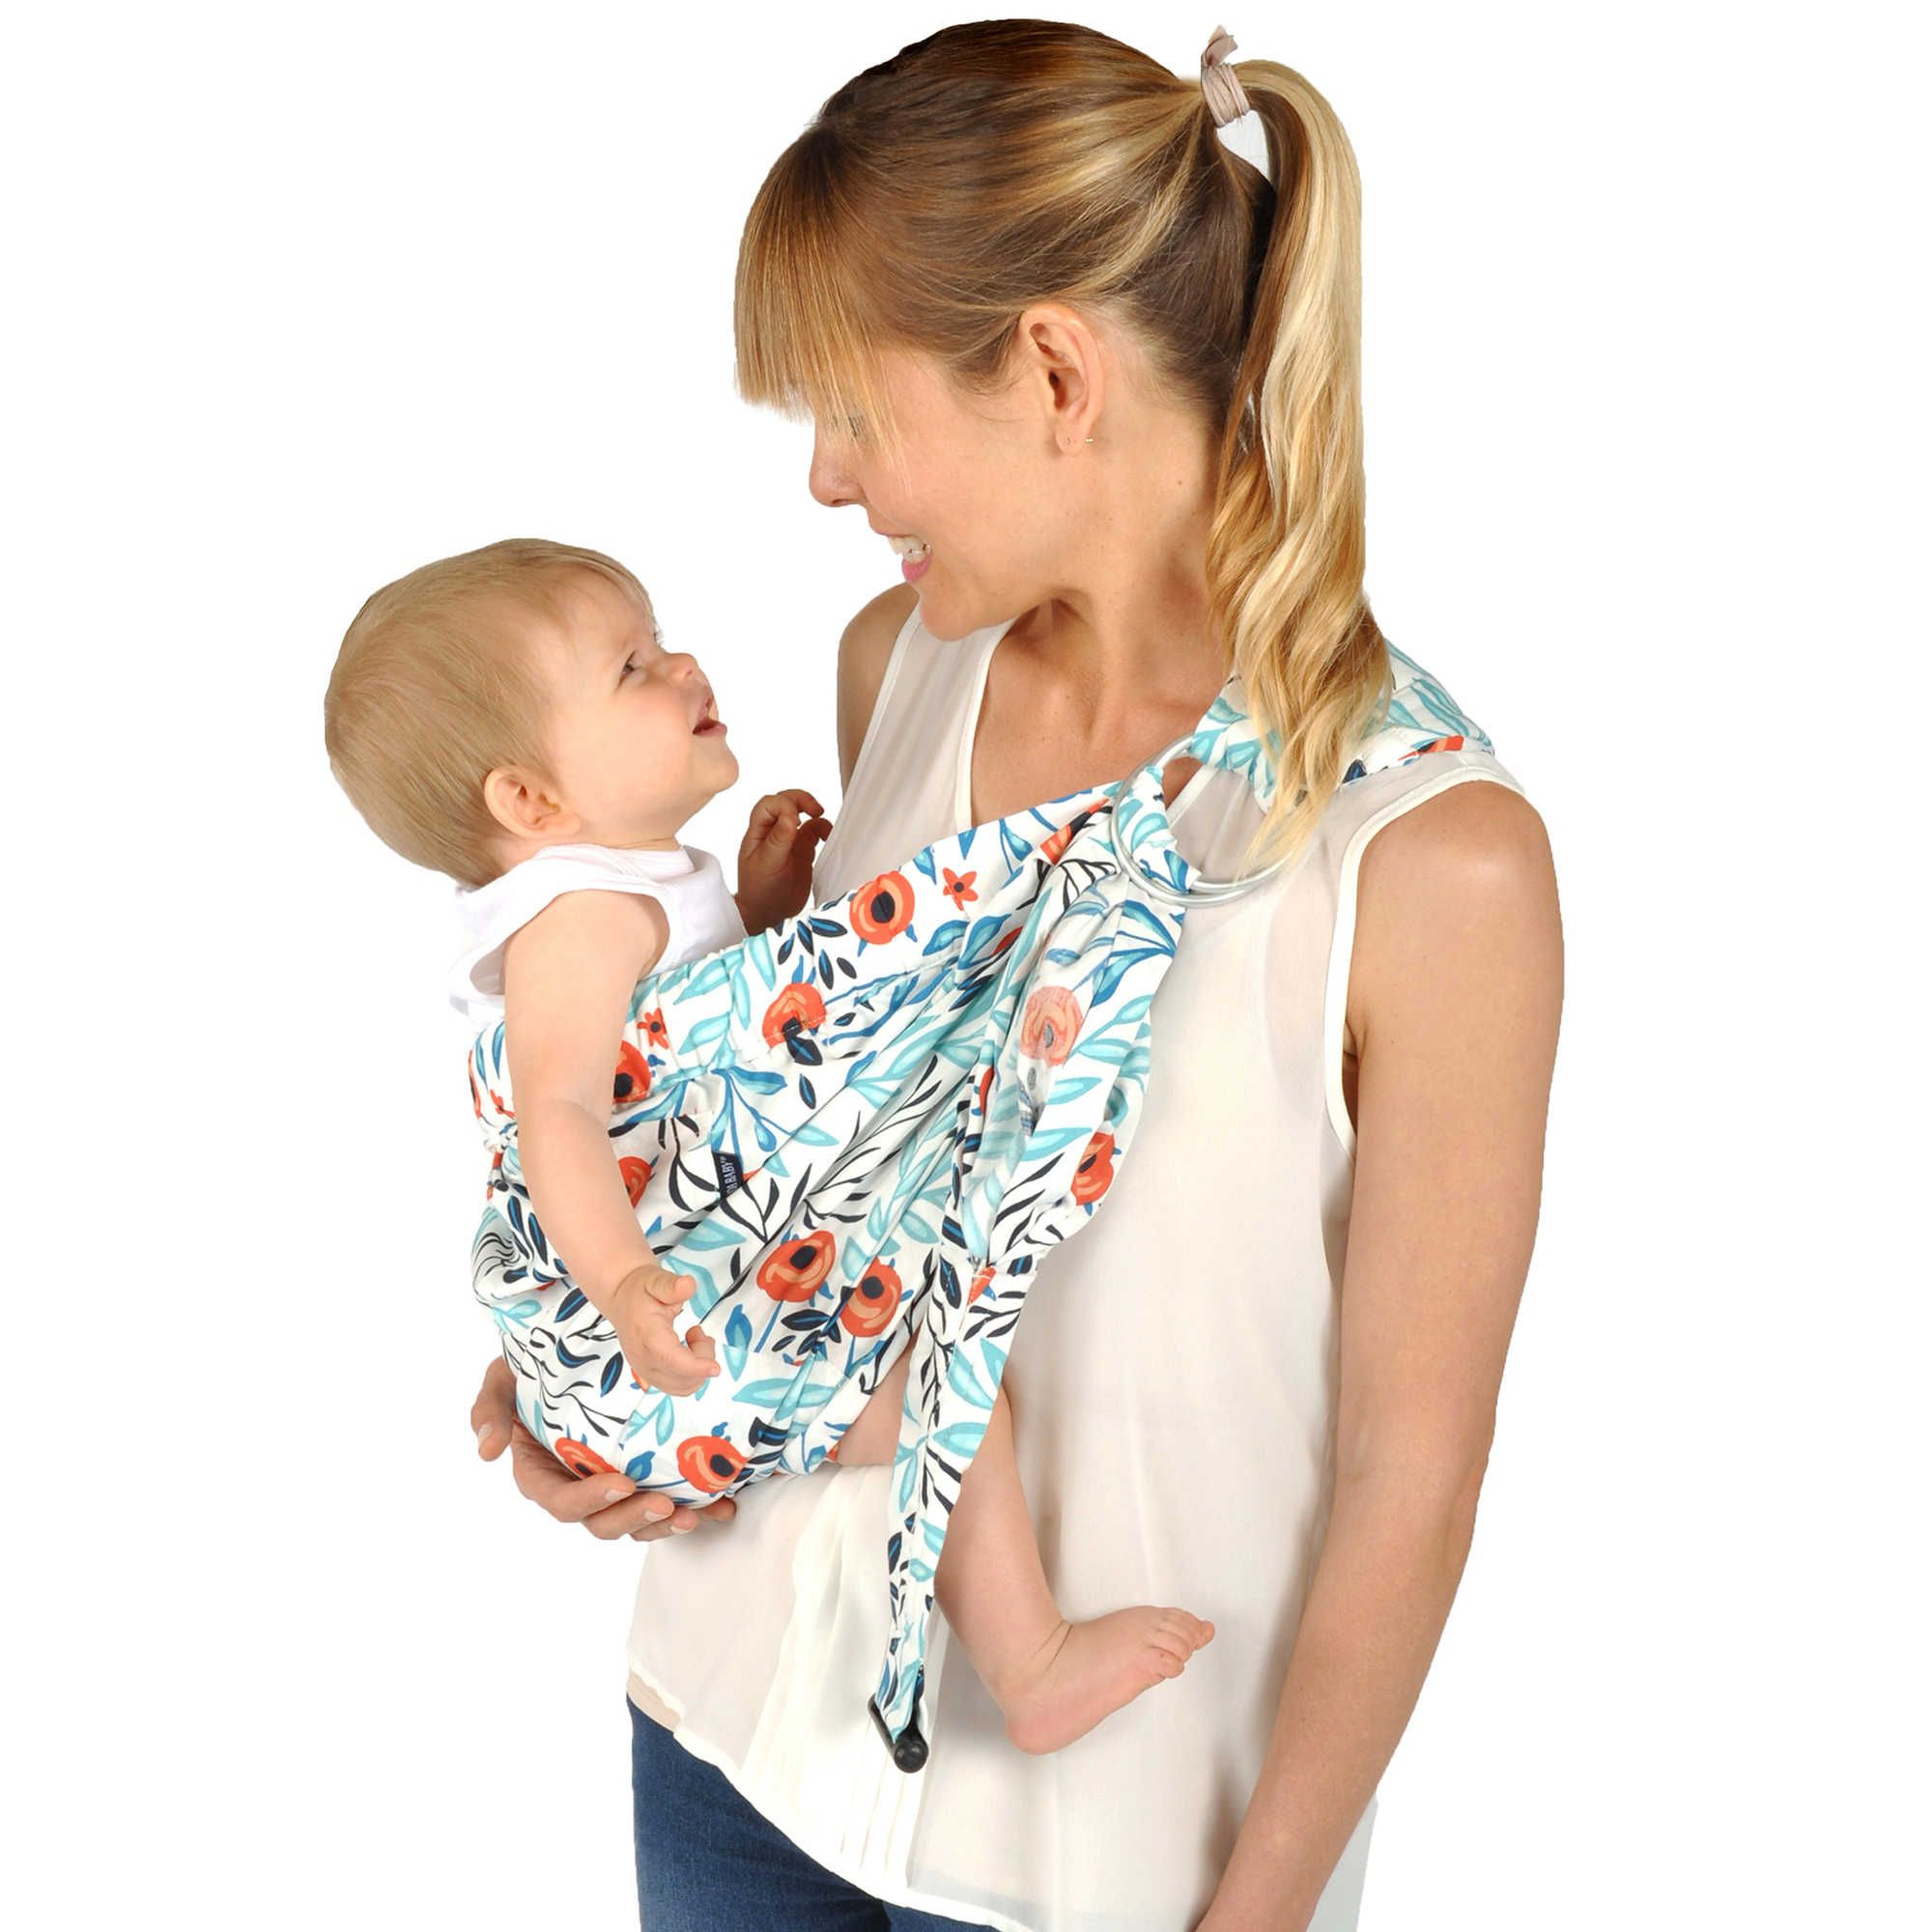 fd0856334ae Balboa Baby® Dr. Sears Original Adjustable Baby Sling Baby Carrier in  Rinocula